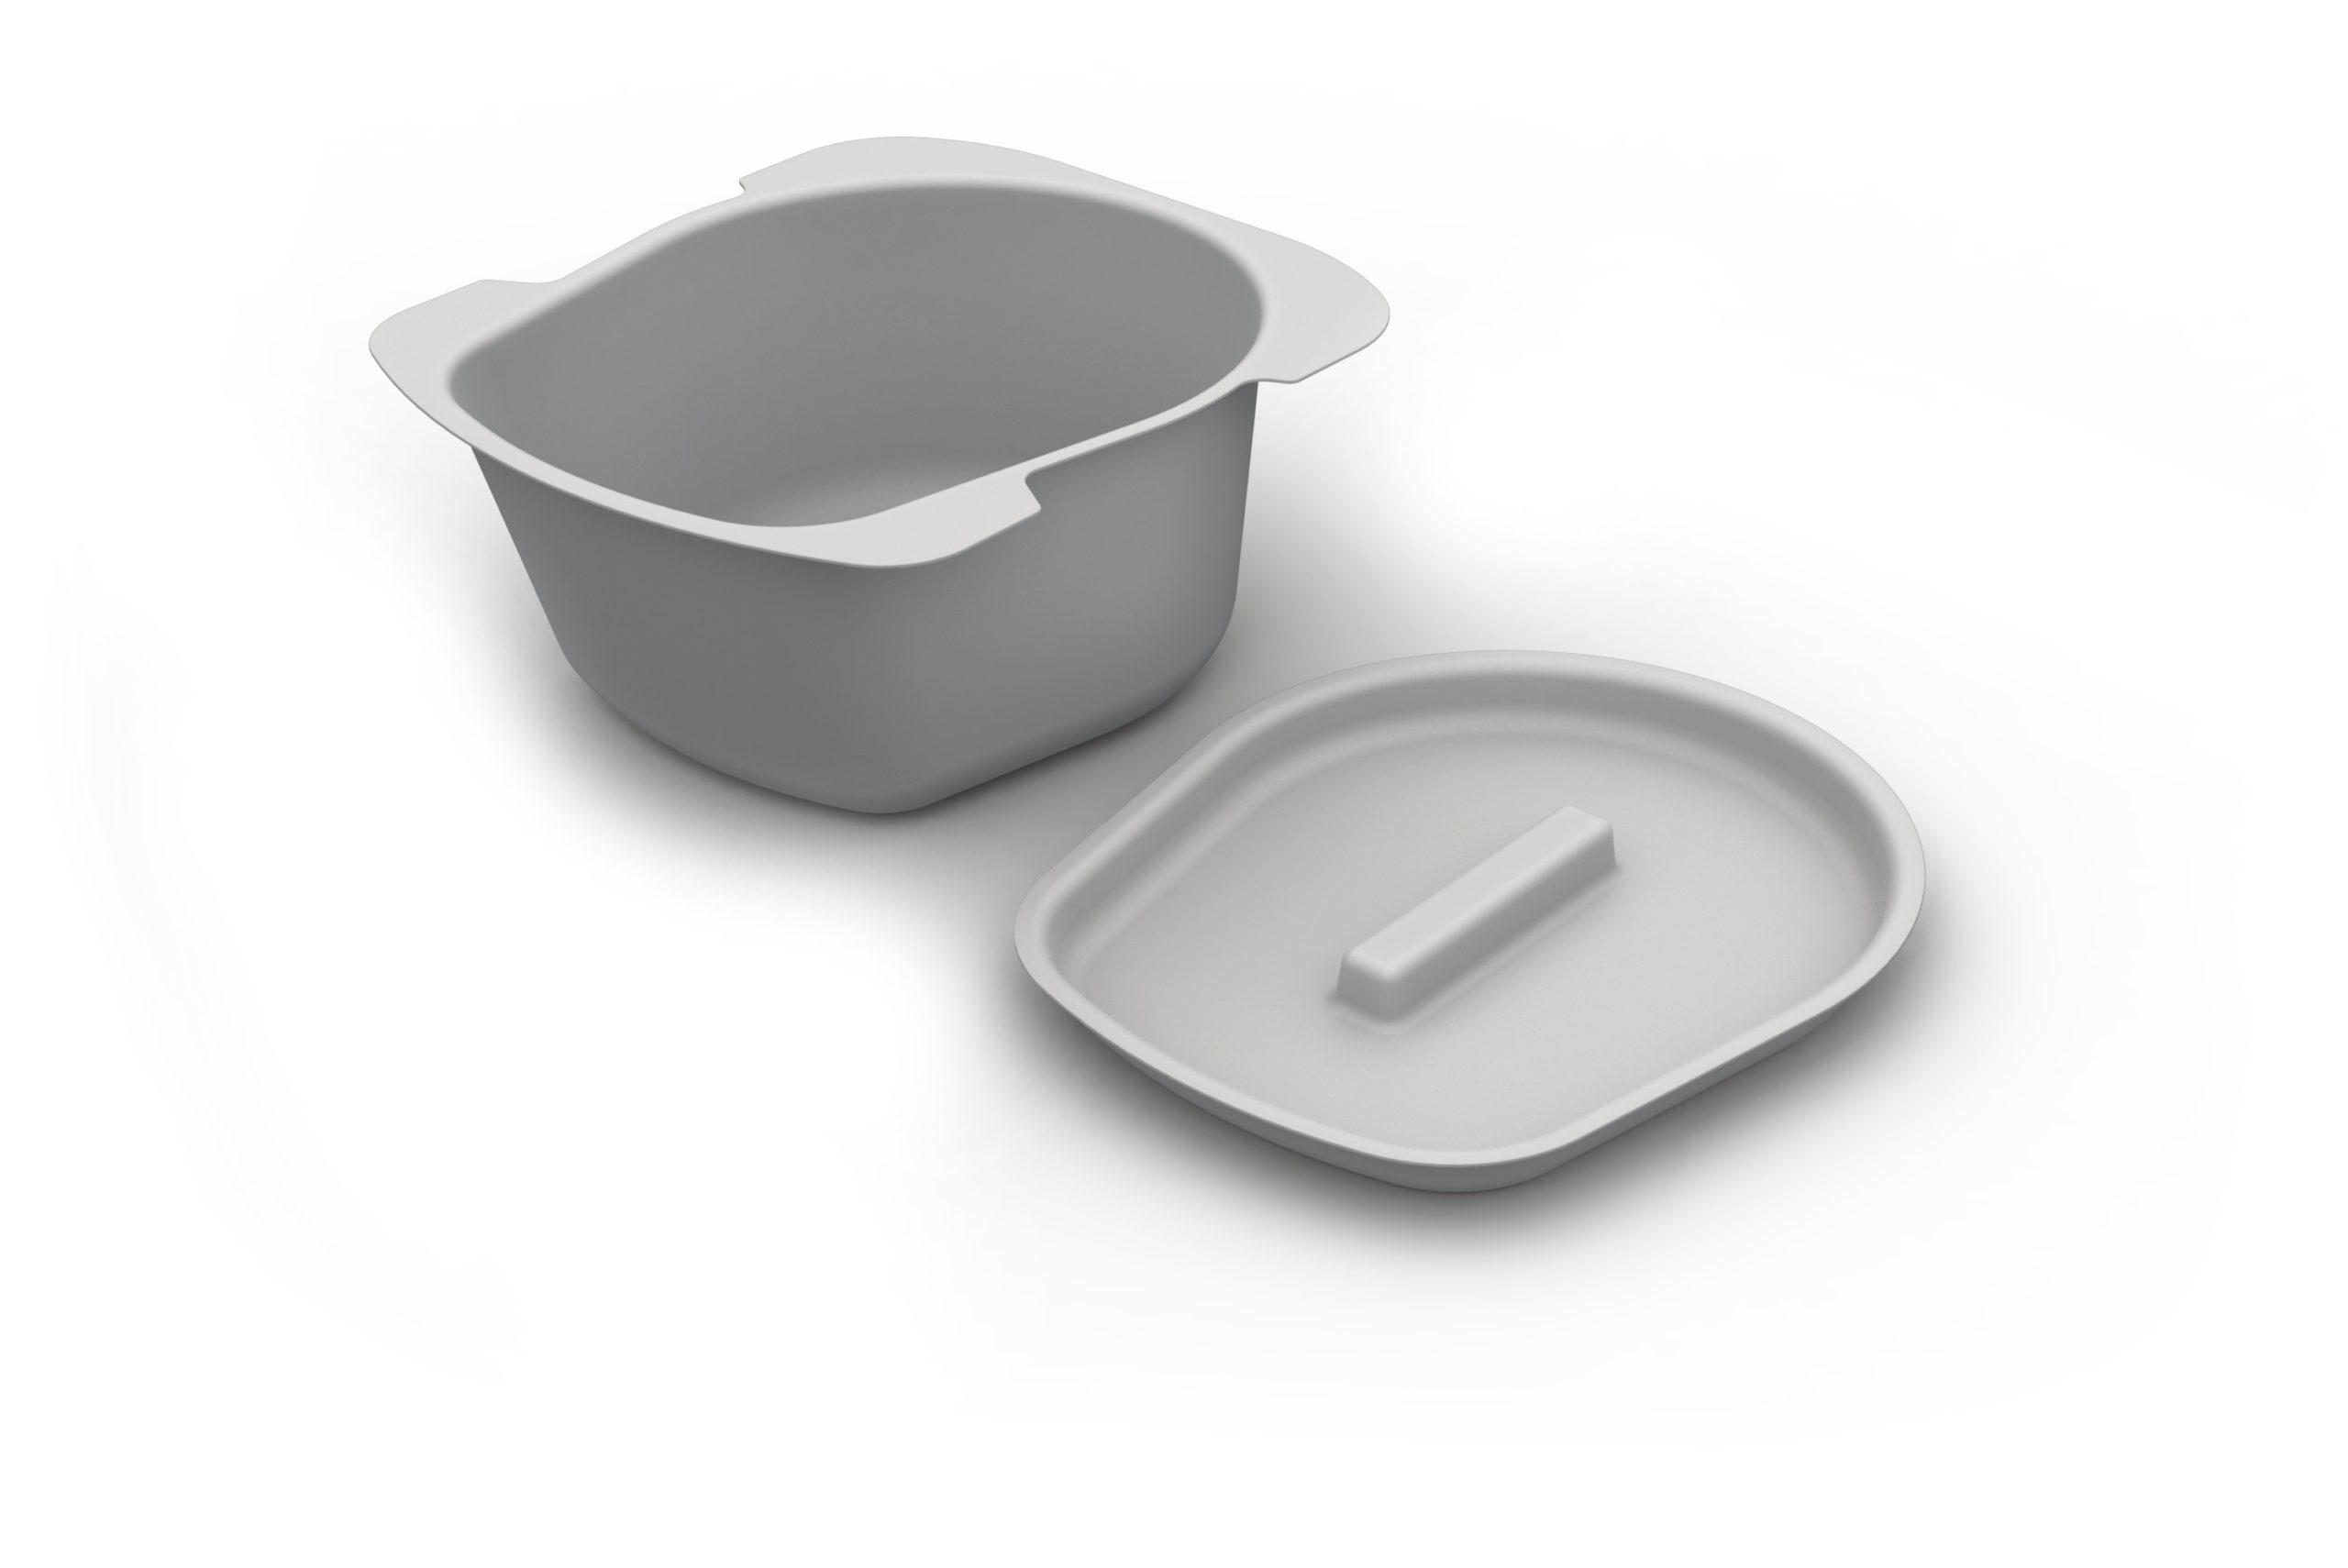 RG5B – SPACE SAVER BOWL AND LID – Accessory